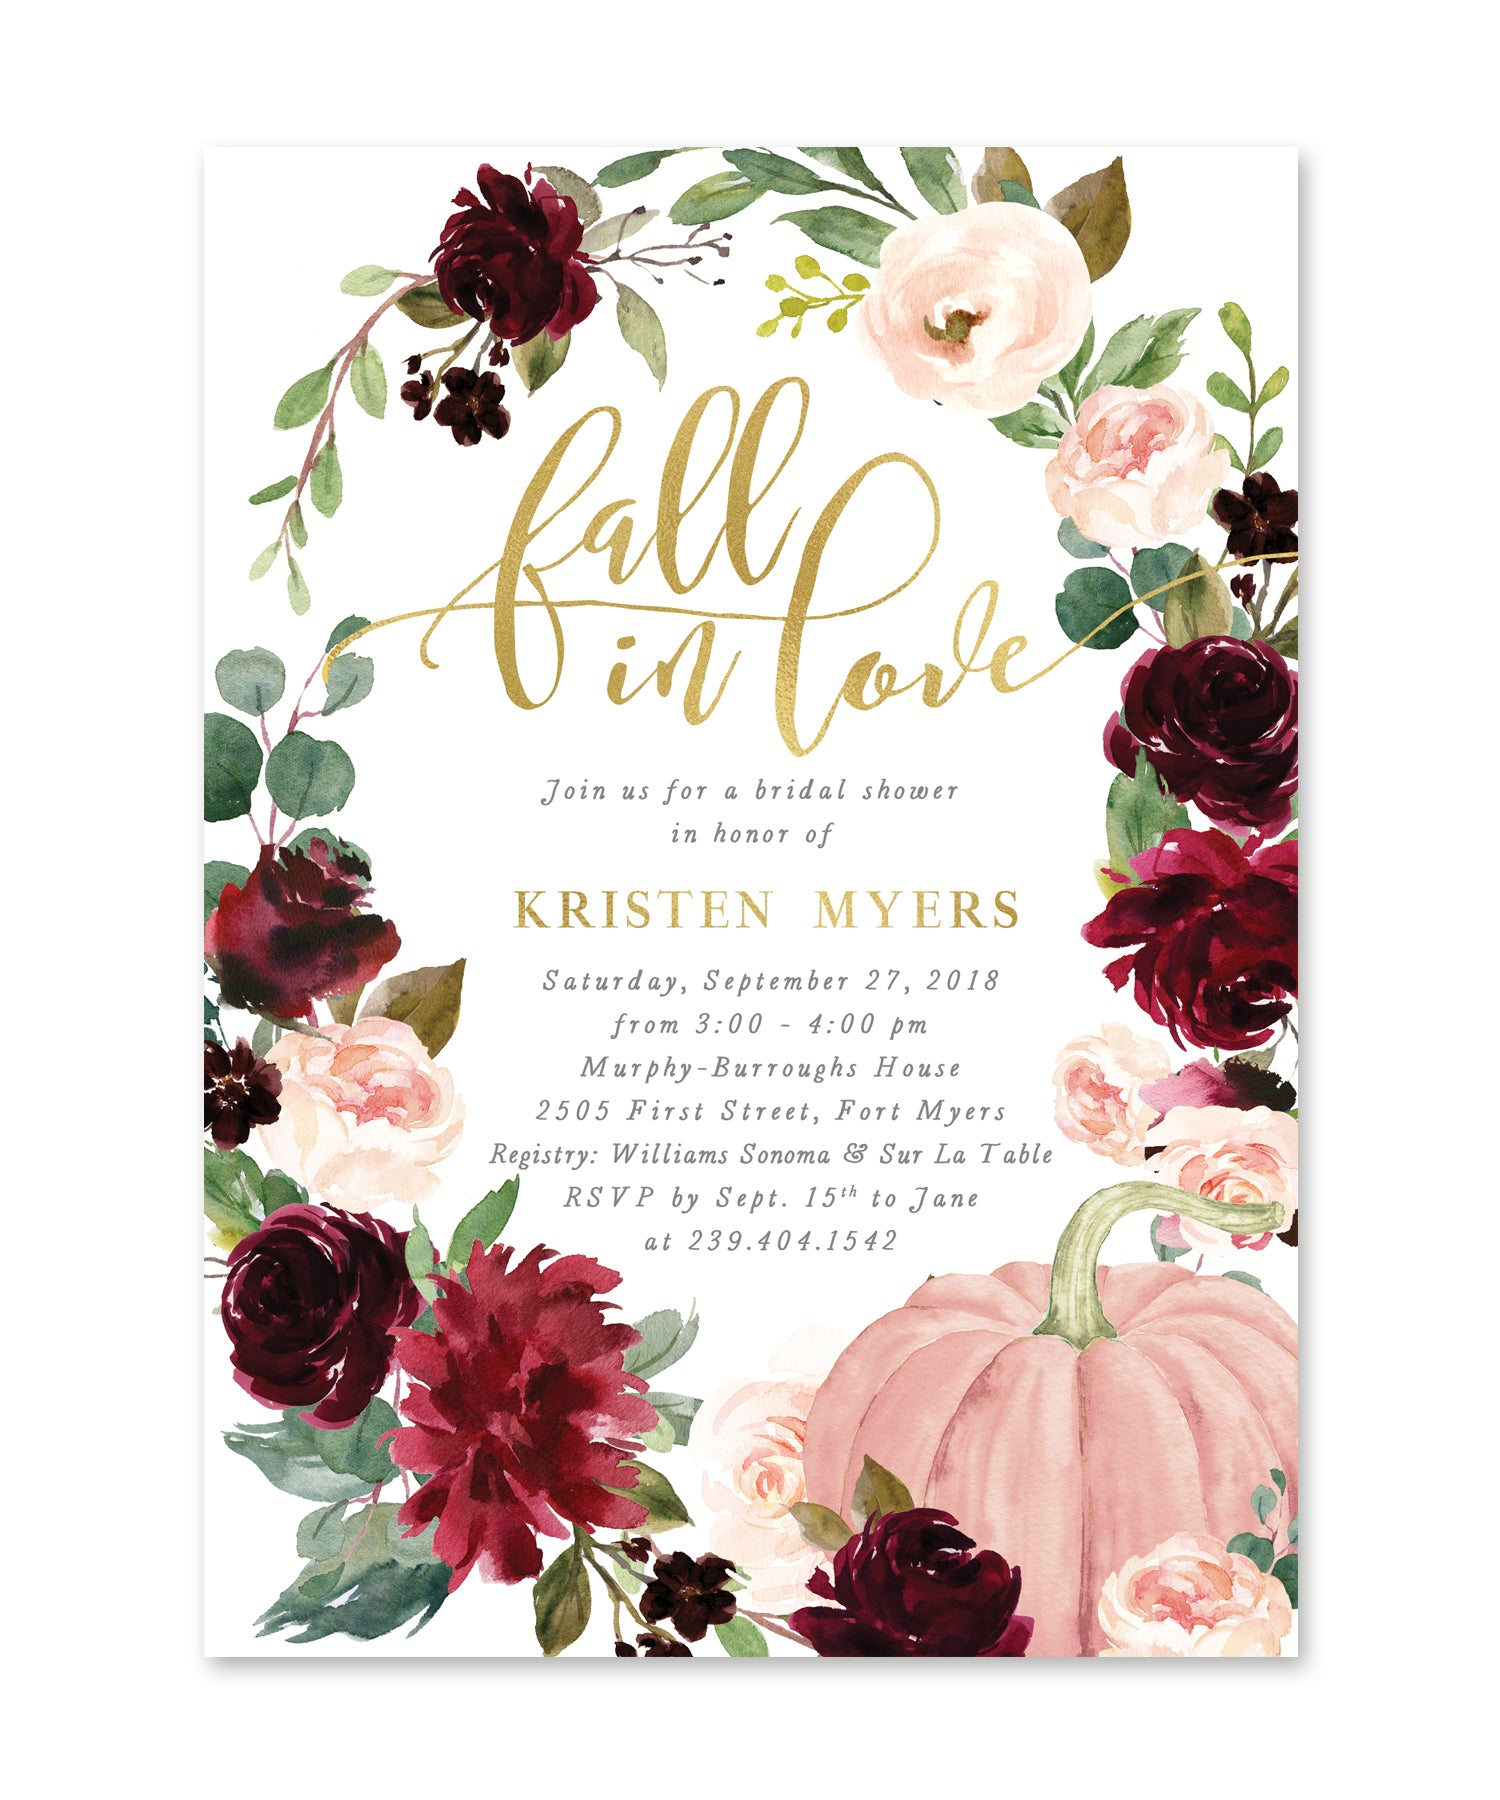 fall in love bridal shower invitation fall bridal shower invite burgundy and blush bridal shower invite pumpkin bridal invite kristen